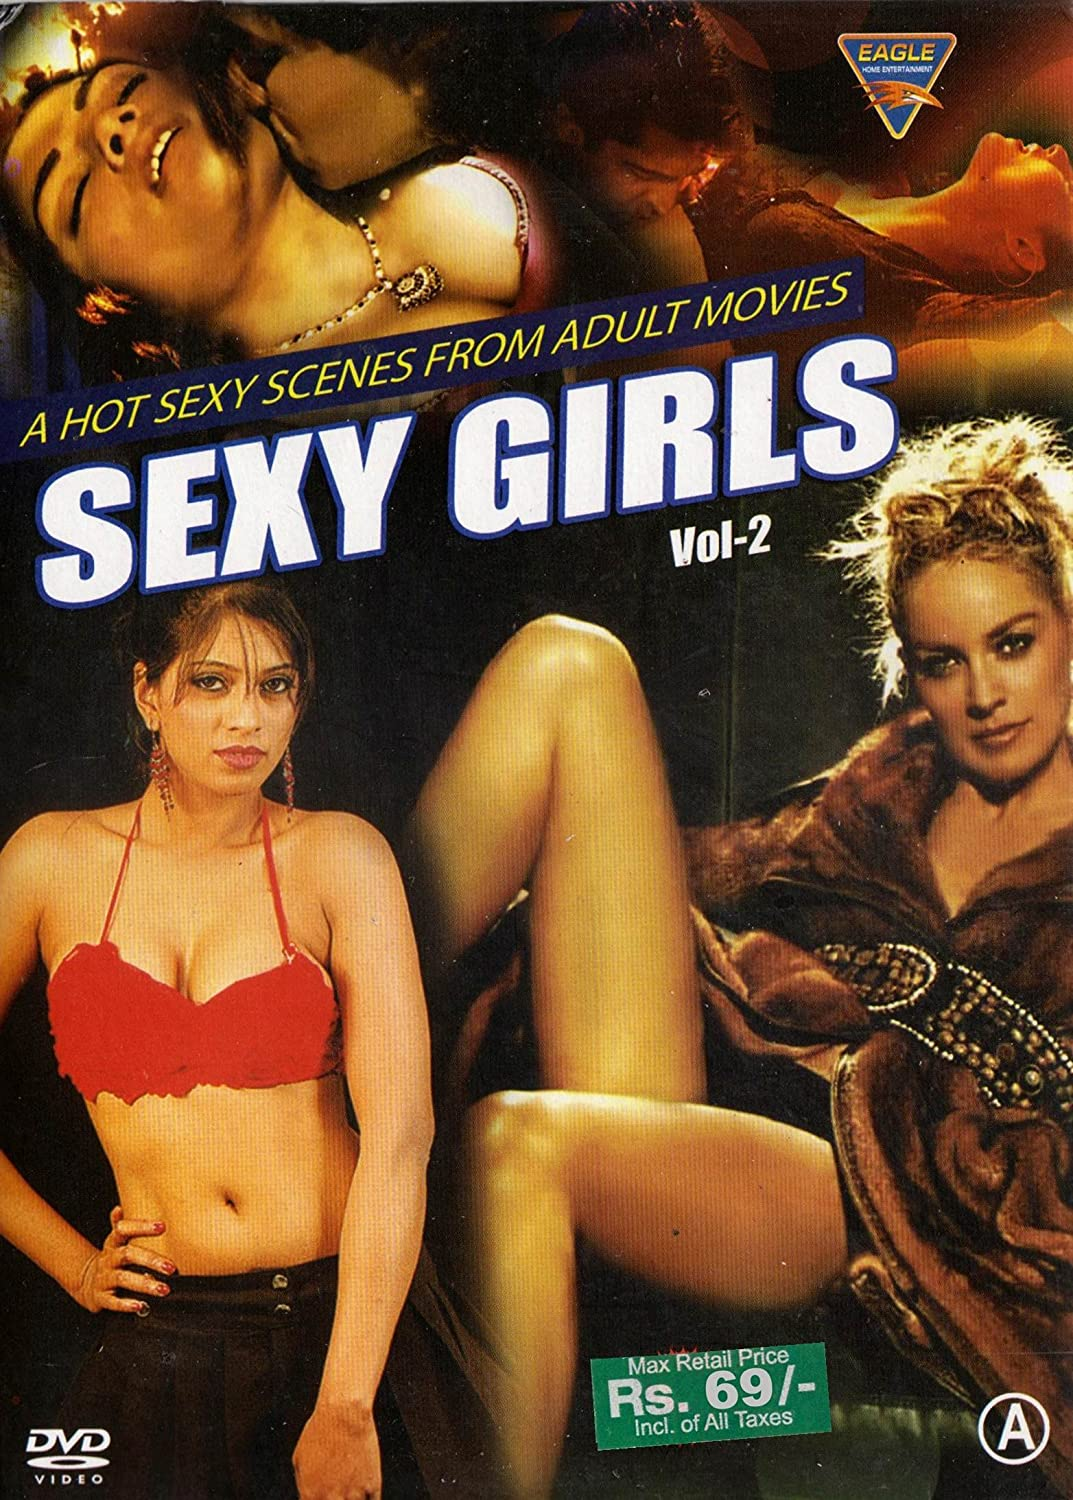 2 (HOT ADULT MOVIES) (E 194) DVD, Blu-ray Online at Best Prices in India |  Movies & TV Shows